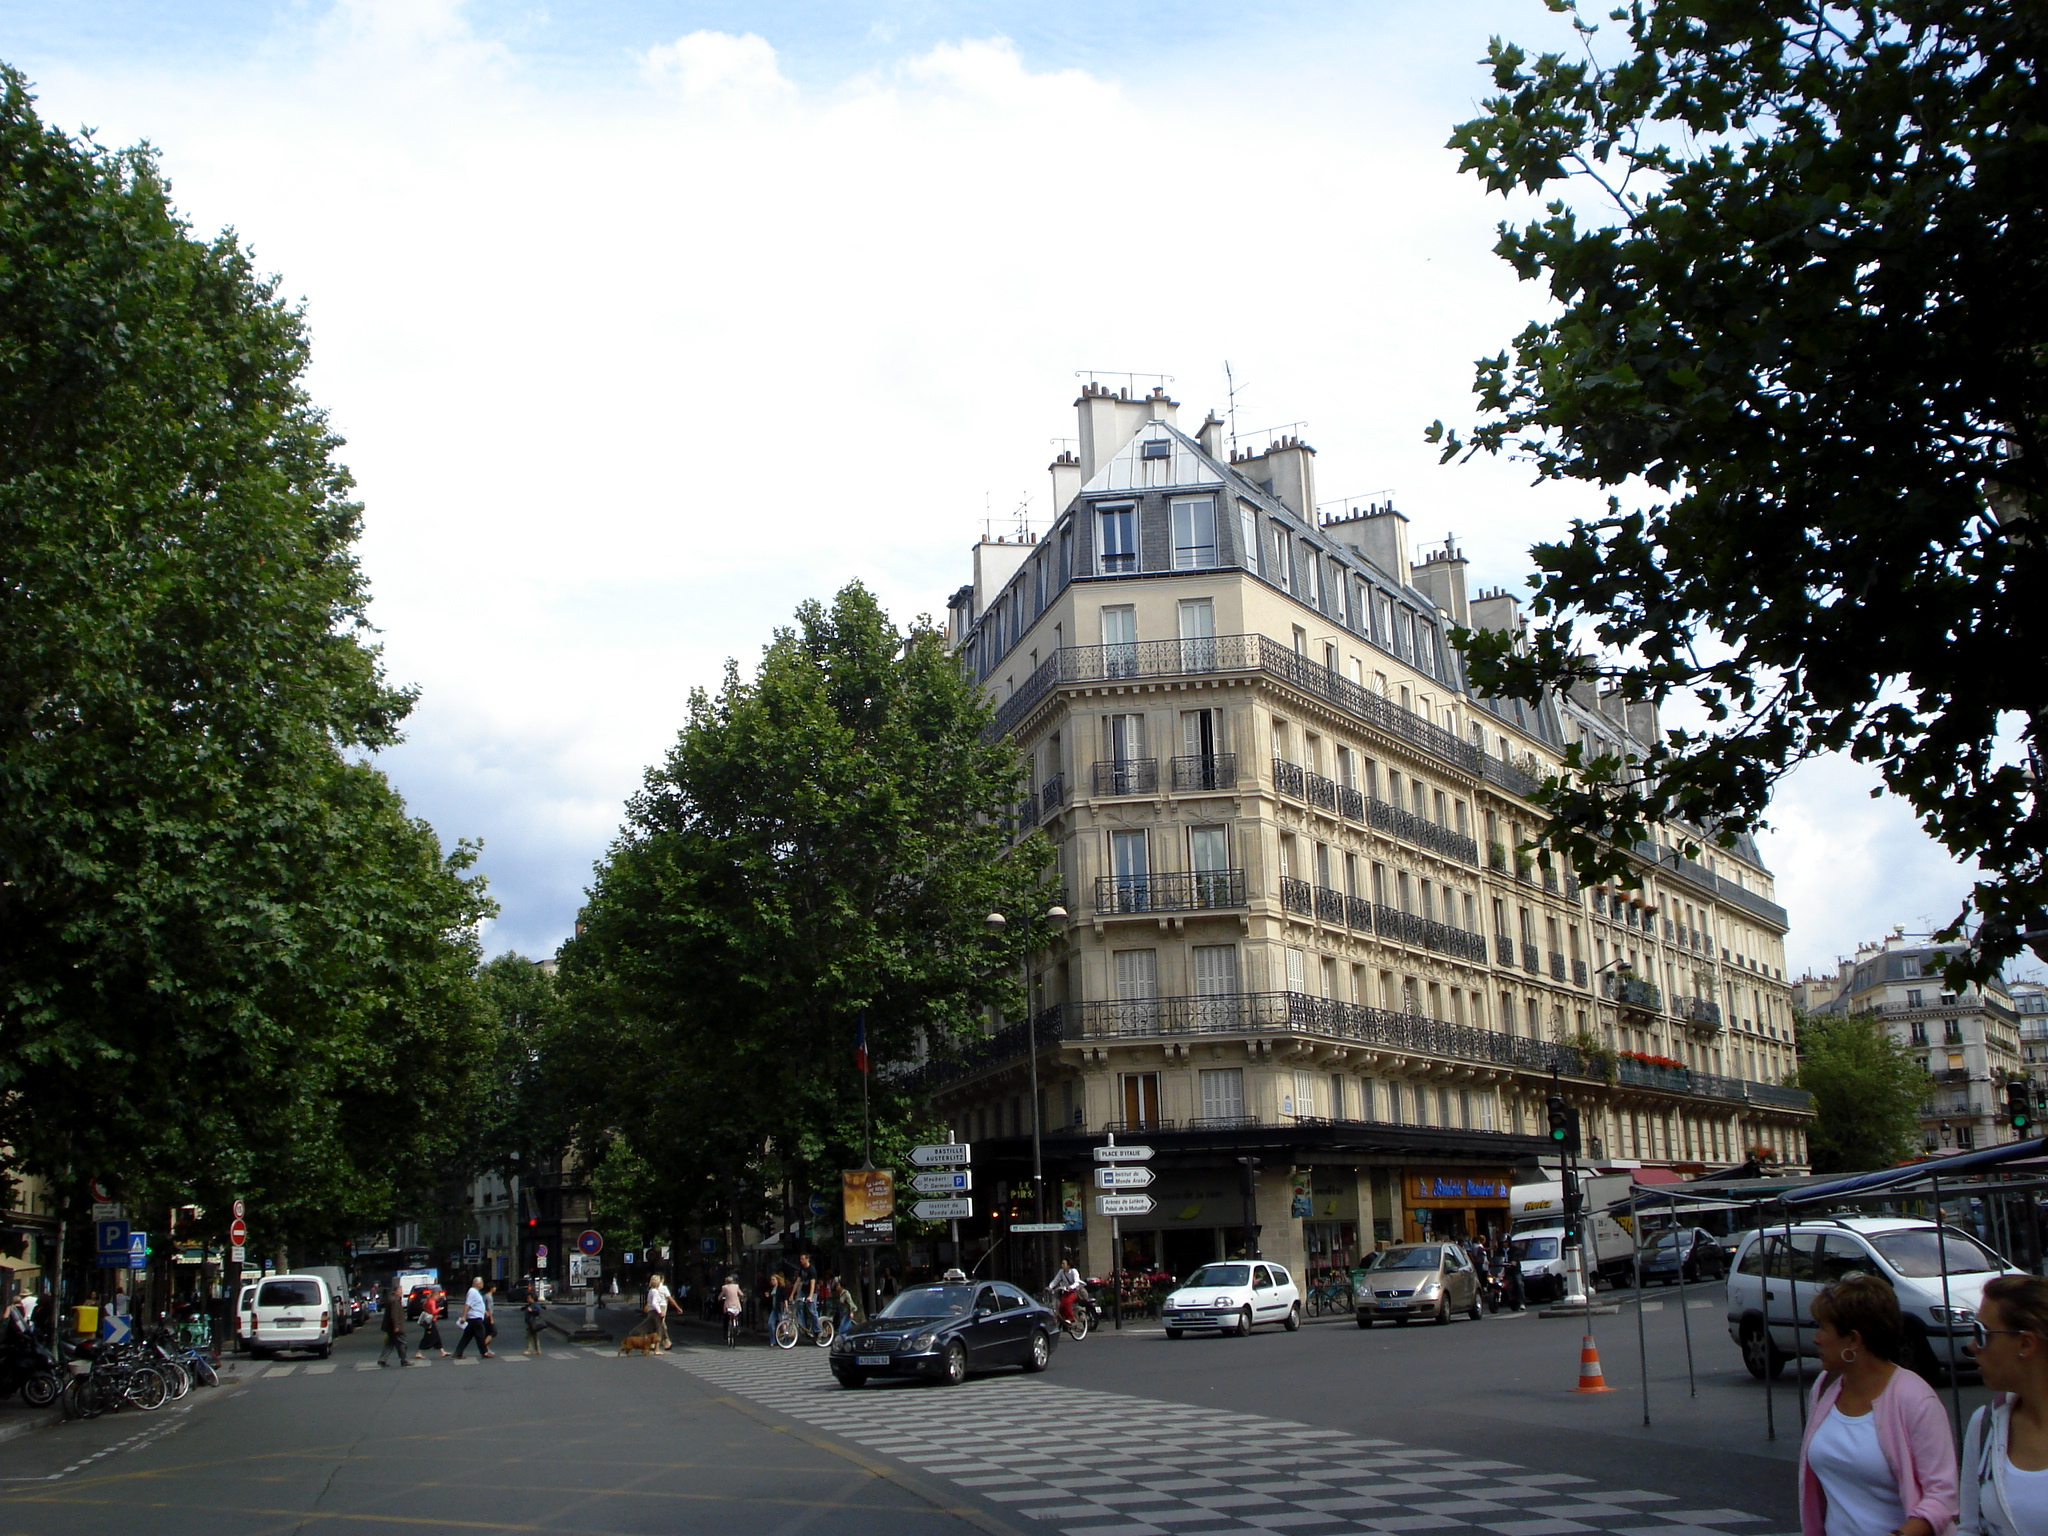 boulevard saint germain et la rue monge explore carles tom flickr photo sharing. Black Bedroom Furniture Sets. Home Design Ideas